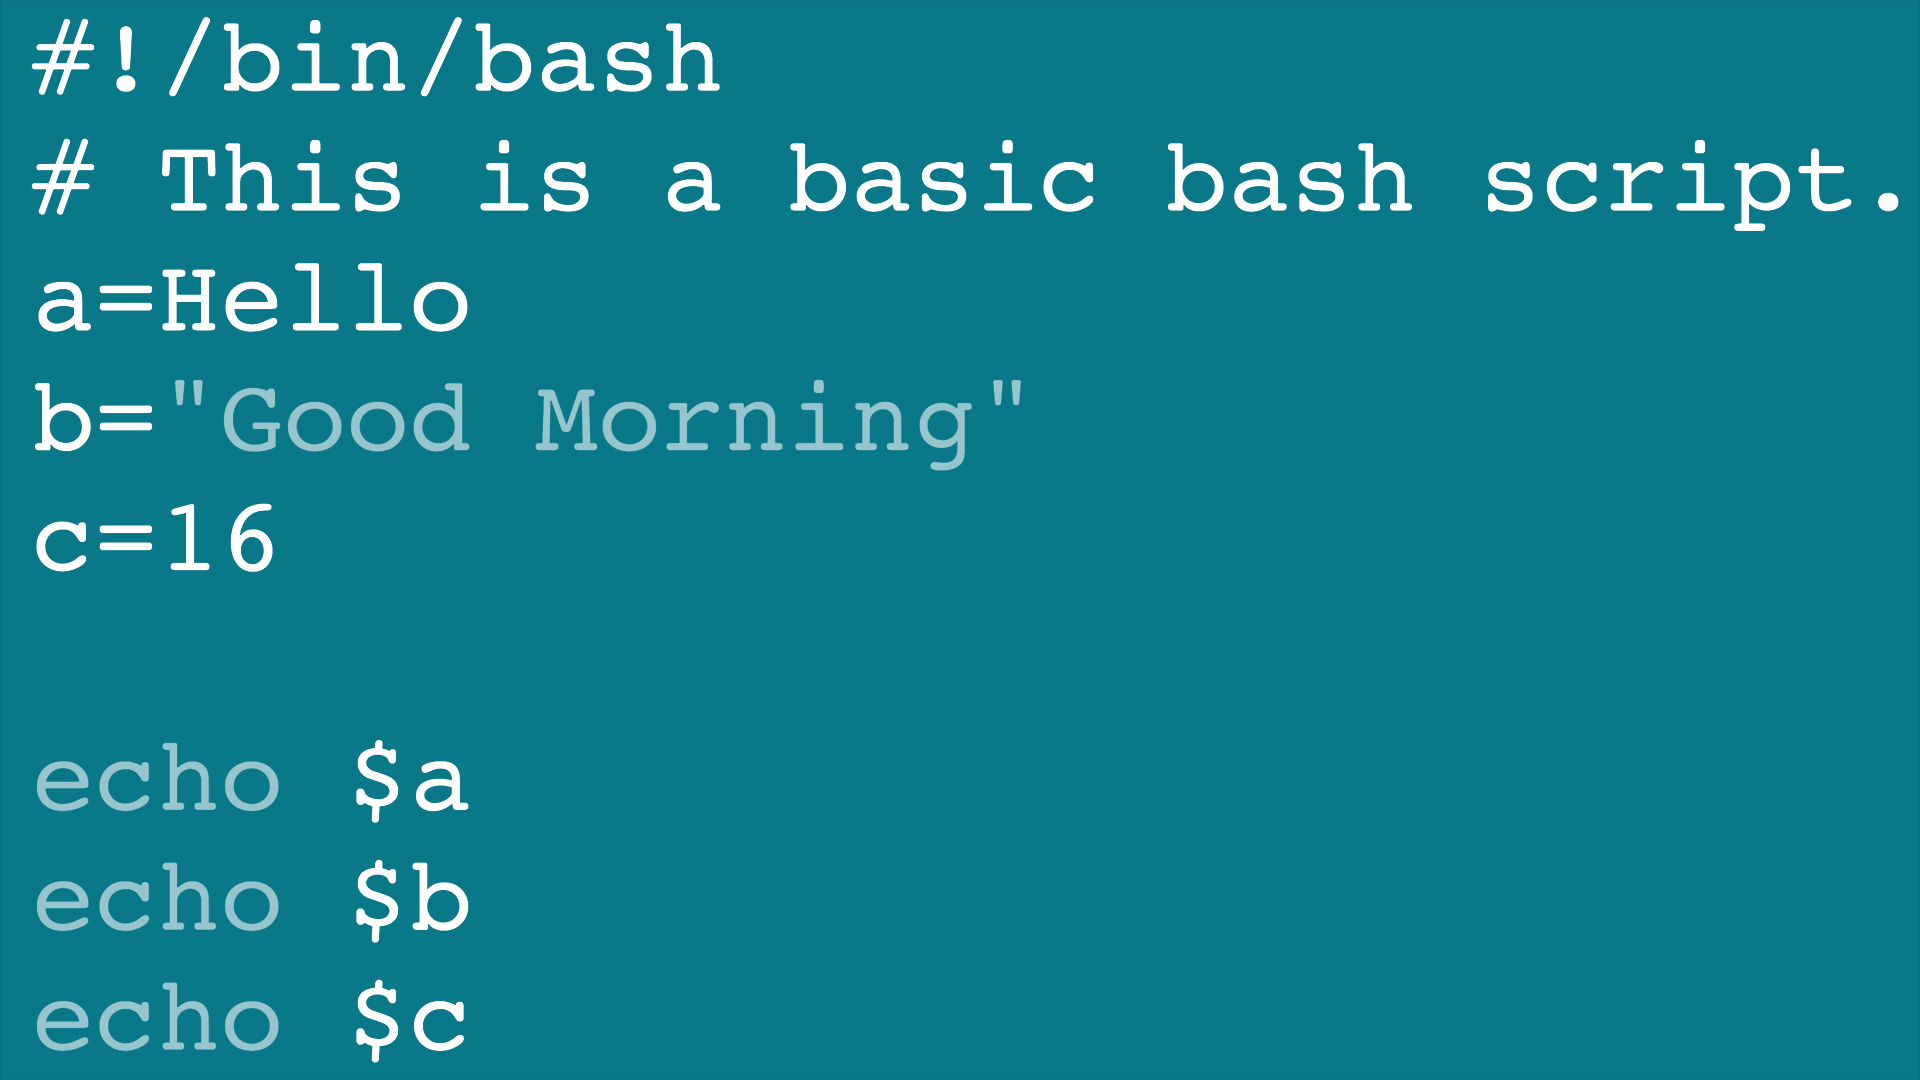 Learning Bash Scripting